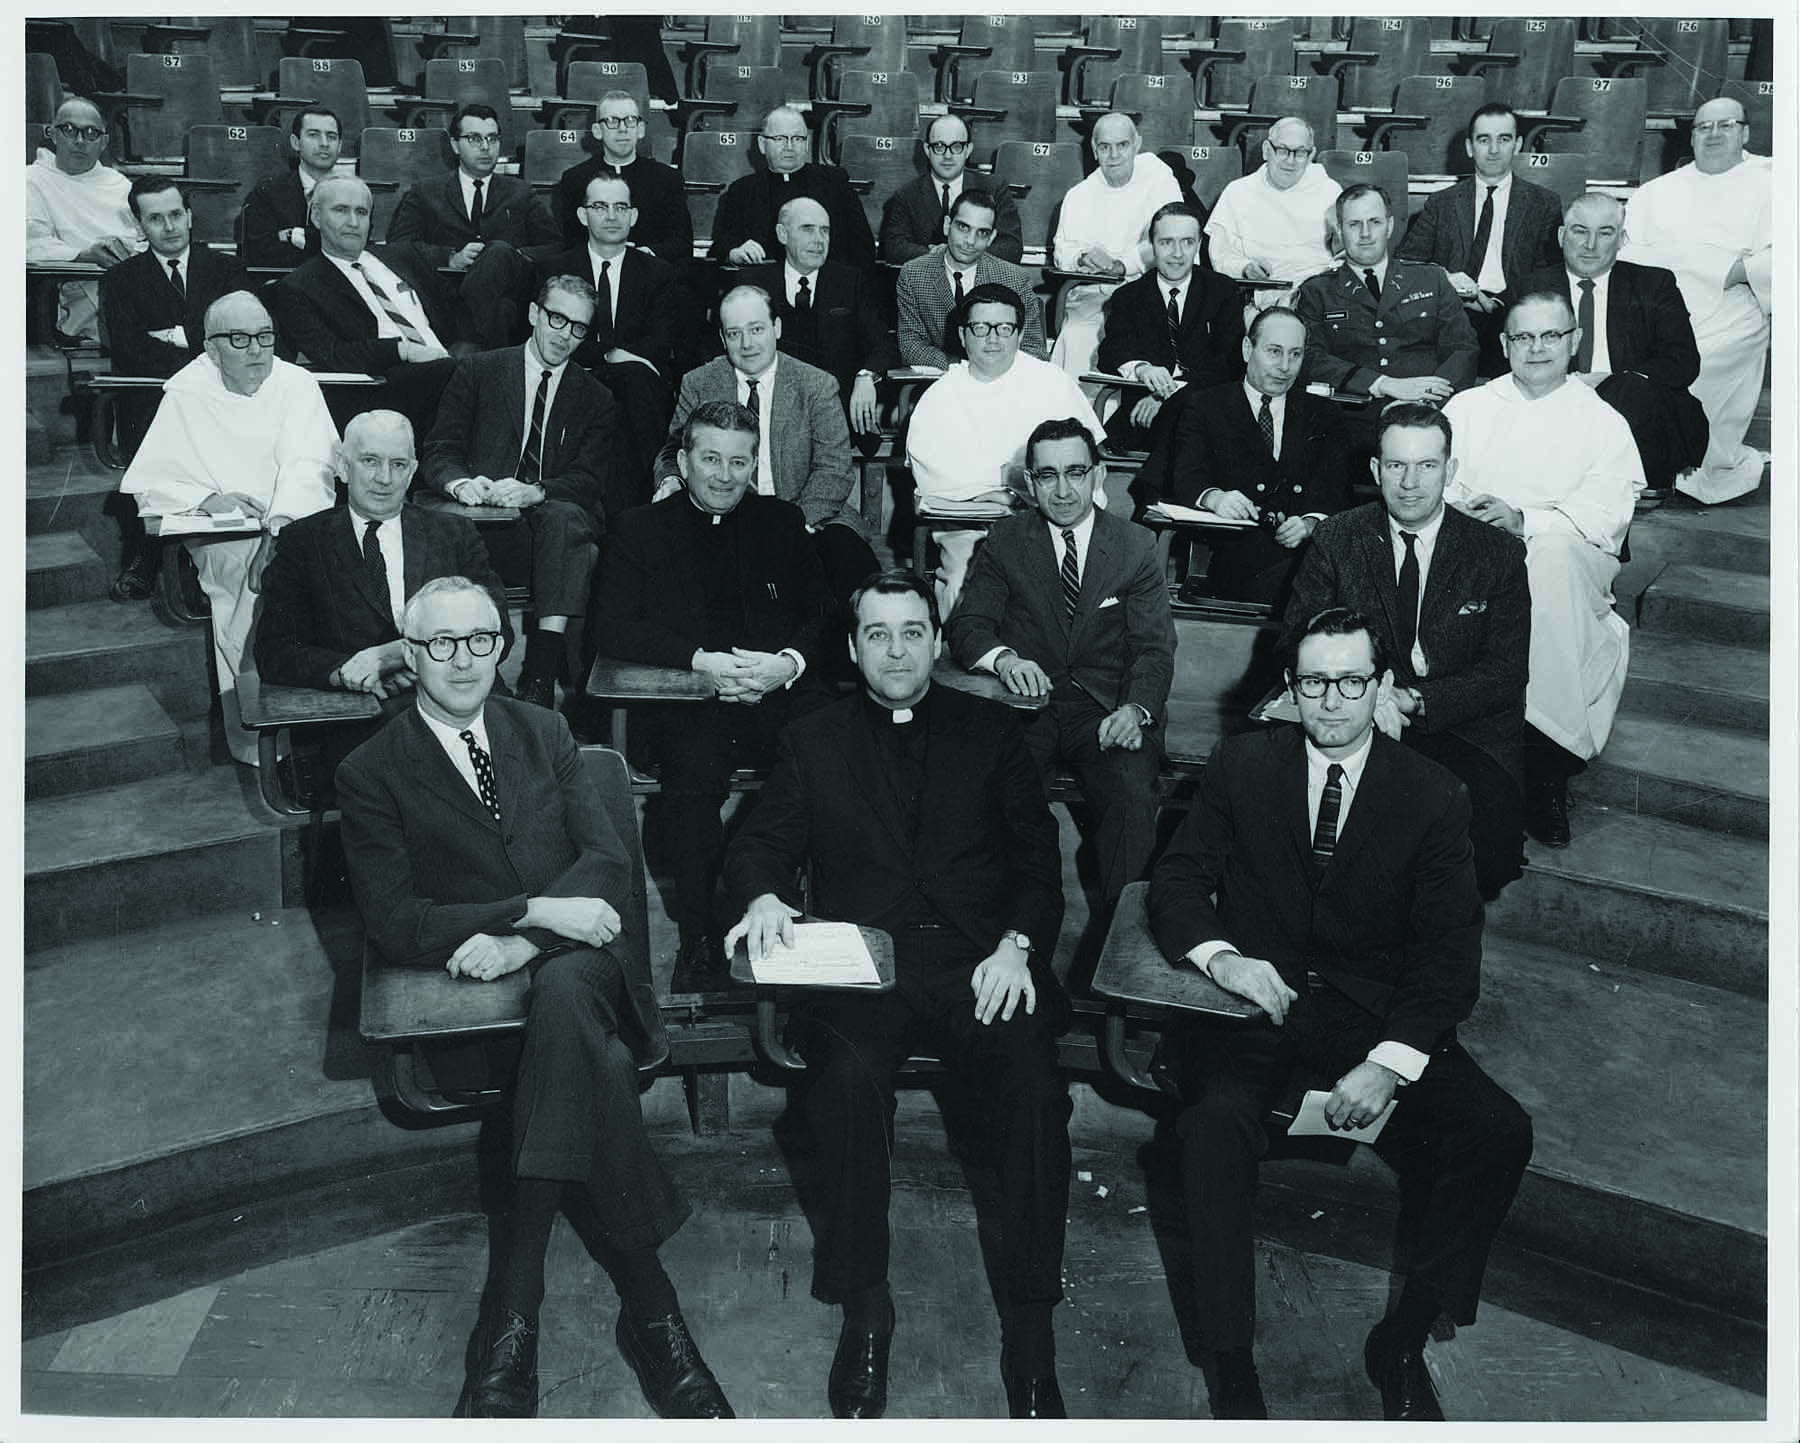 The all-male Faculty Senate convenes its first meeting on Jan. 31, 1968.